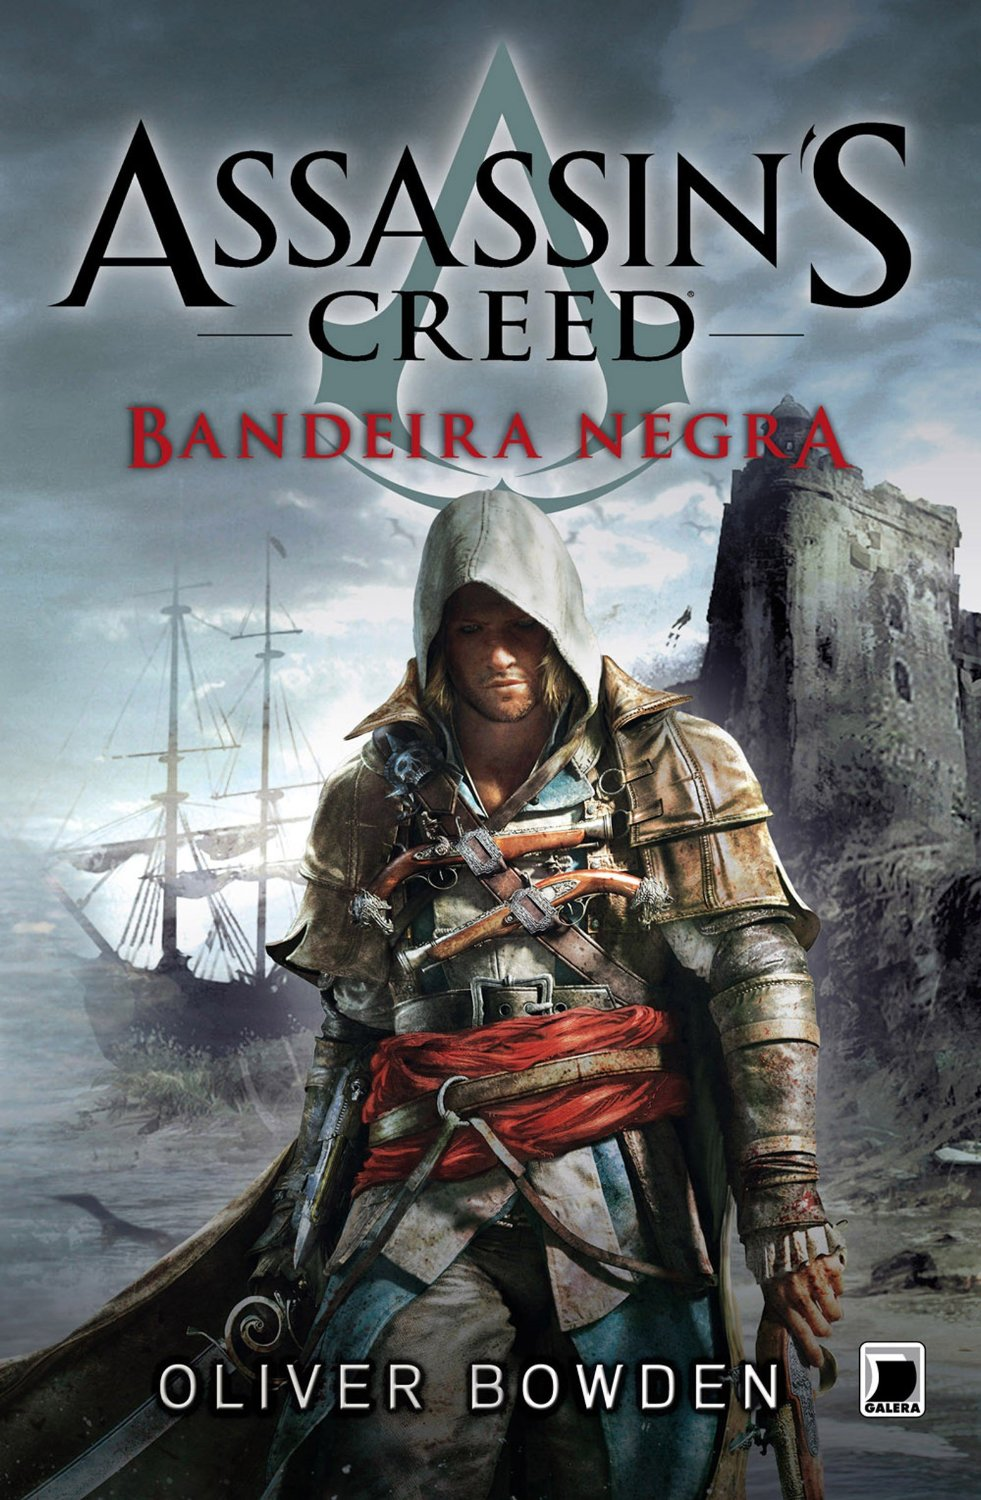 Assassin's Creed - Bandeira Negra - Oliver Bowden